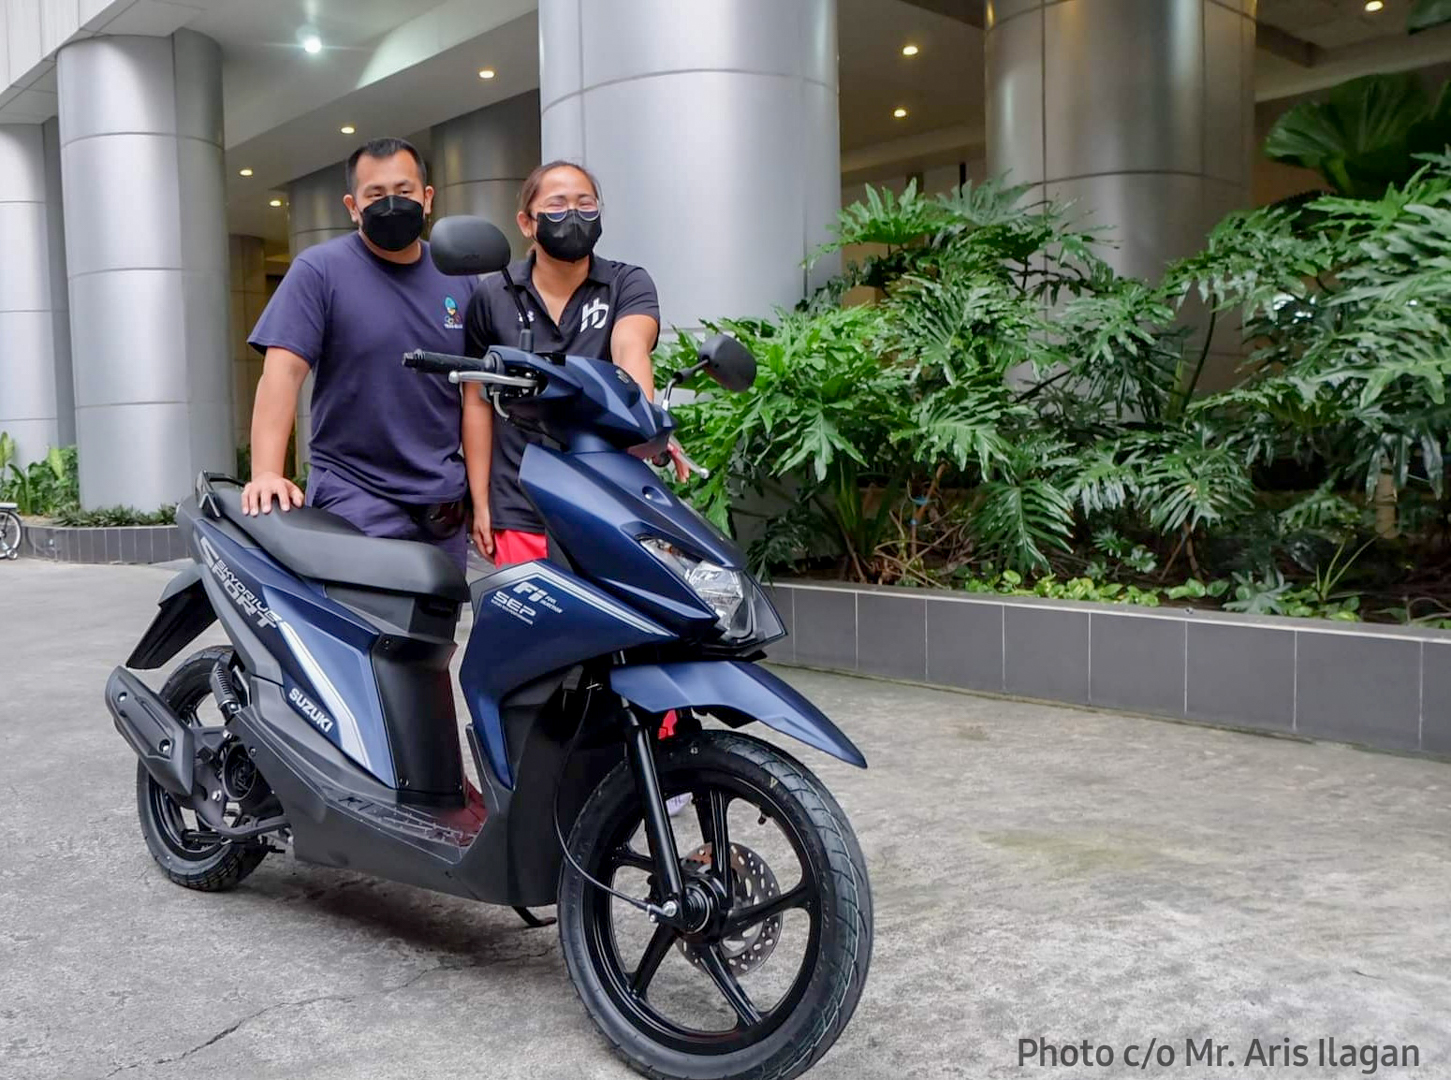 Hidilyn Diaz Receives Her Brand New Scooter from Suzuki Philippines